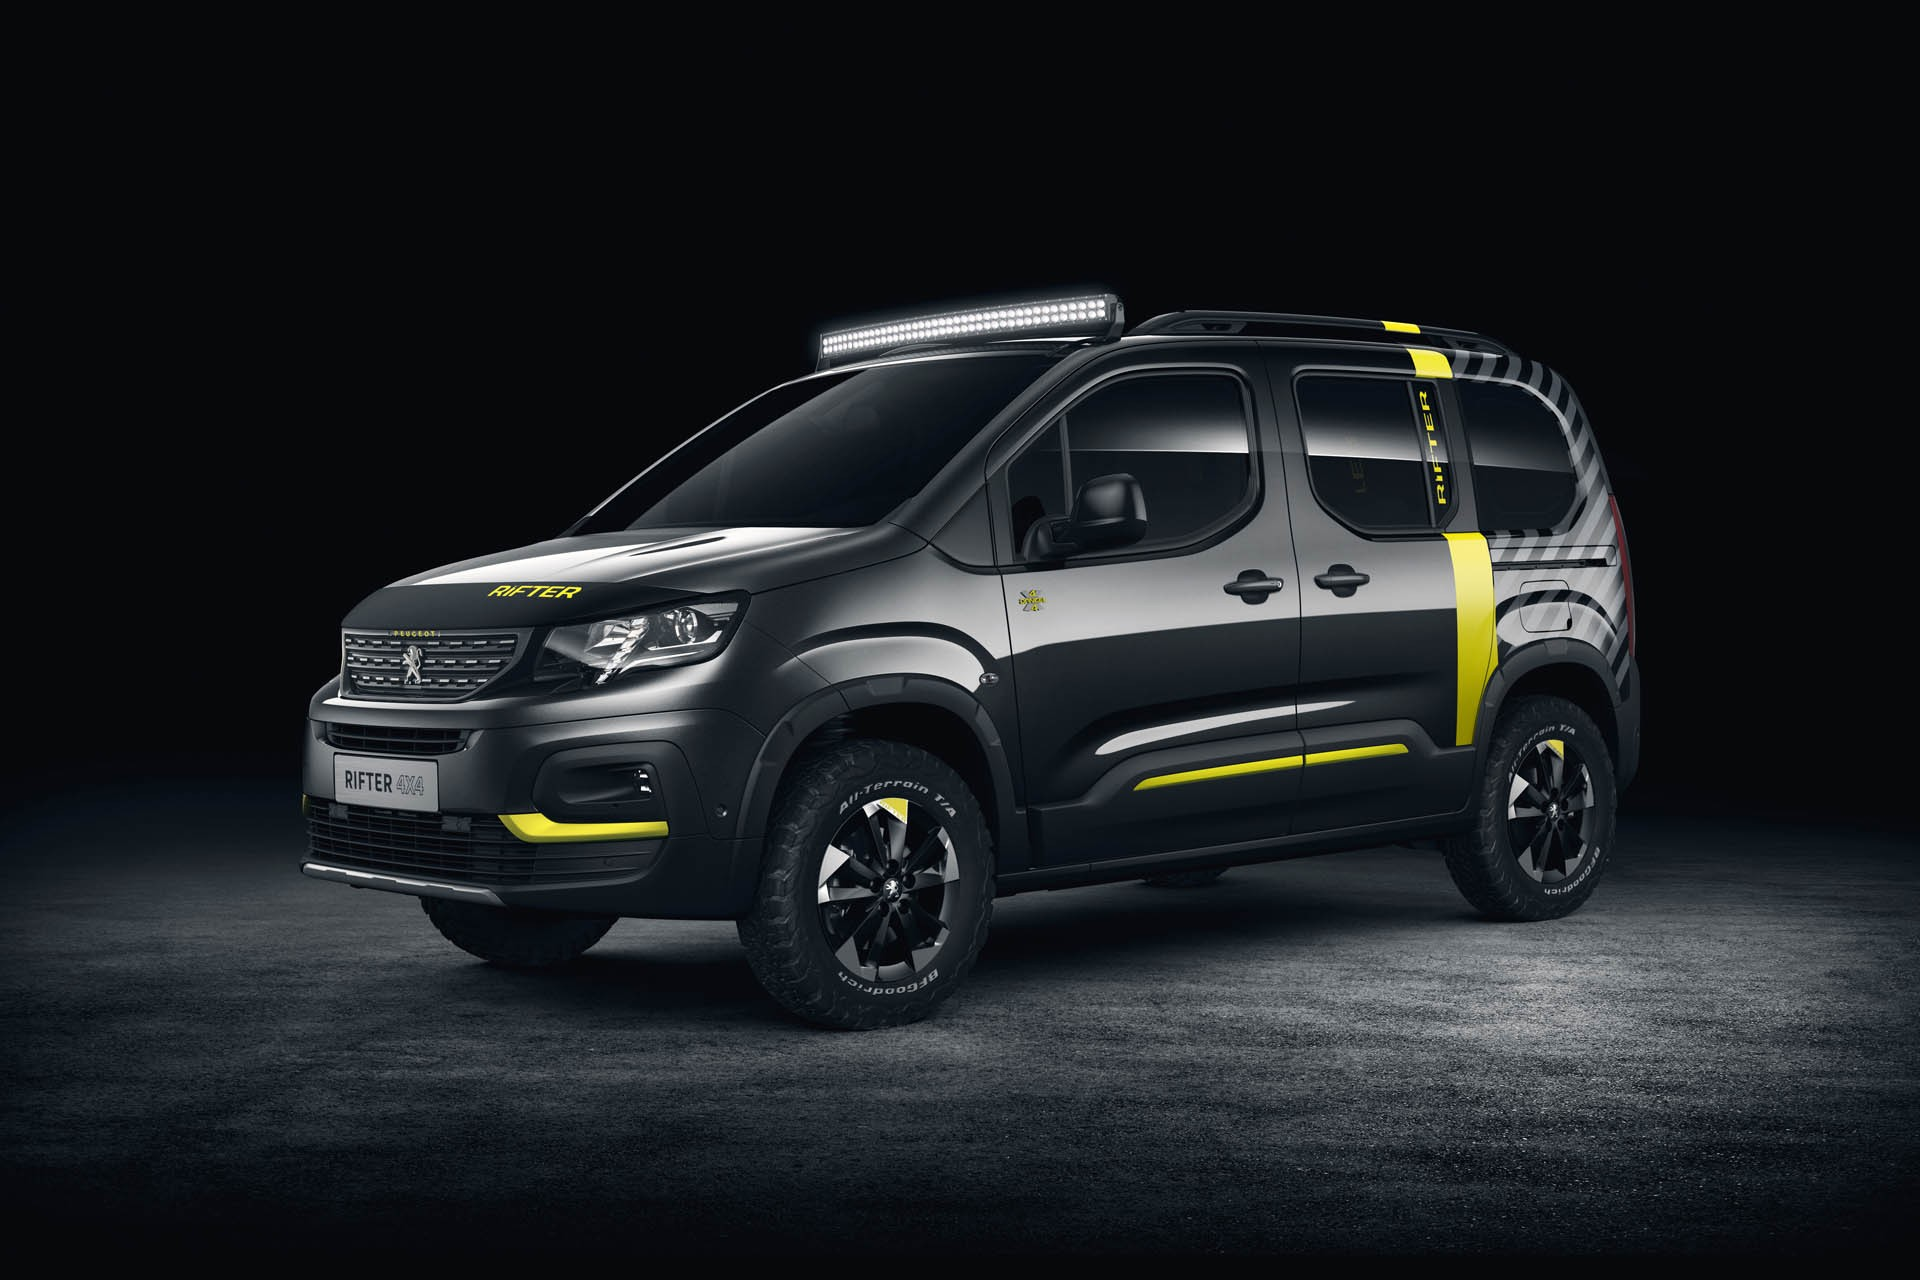 2018 peugeot rifter 4x4 is a turbo diesel powered concept car autoevolution. Black Bedroom Furniture Sets. Home Design Ideas